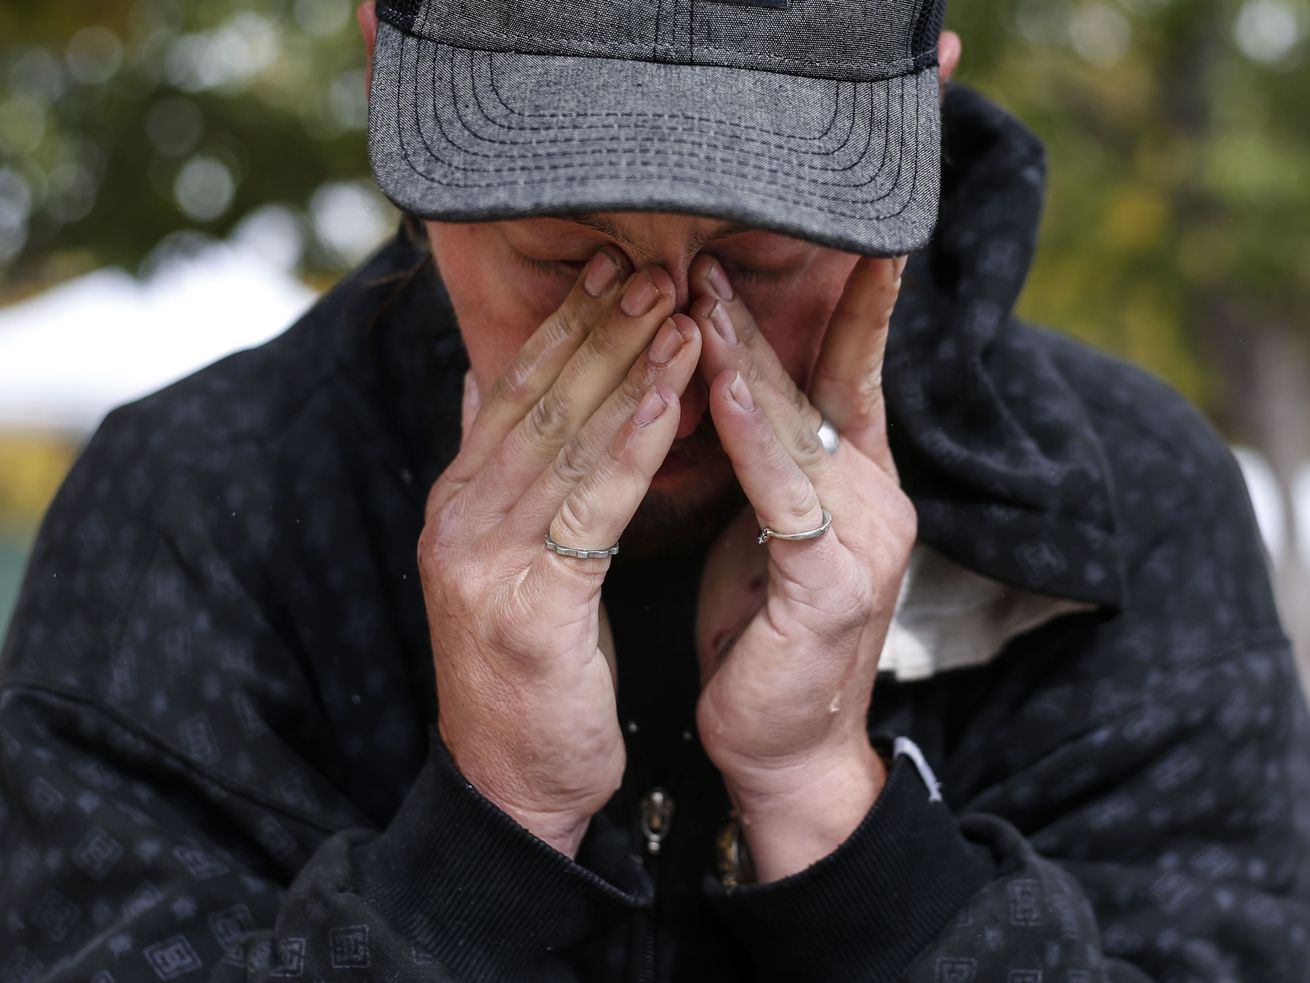 Christopher Hovey wipes his eyes after rinsing his face and hair with a bottle of water at Taufer Park in Salt Lake City on Friday, Oct. 23, 2020.